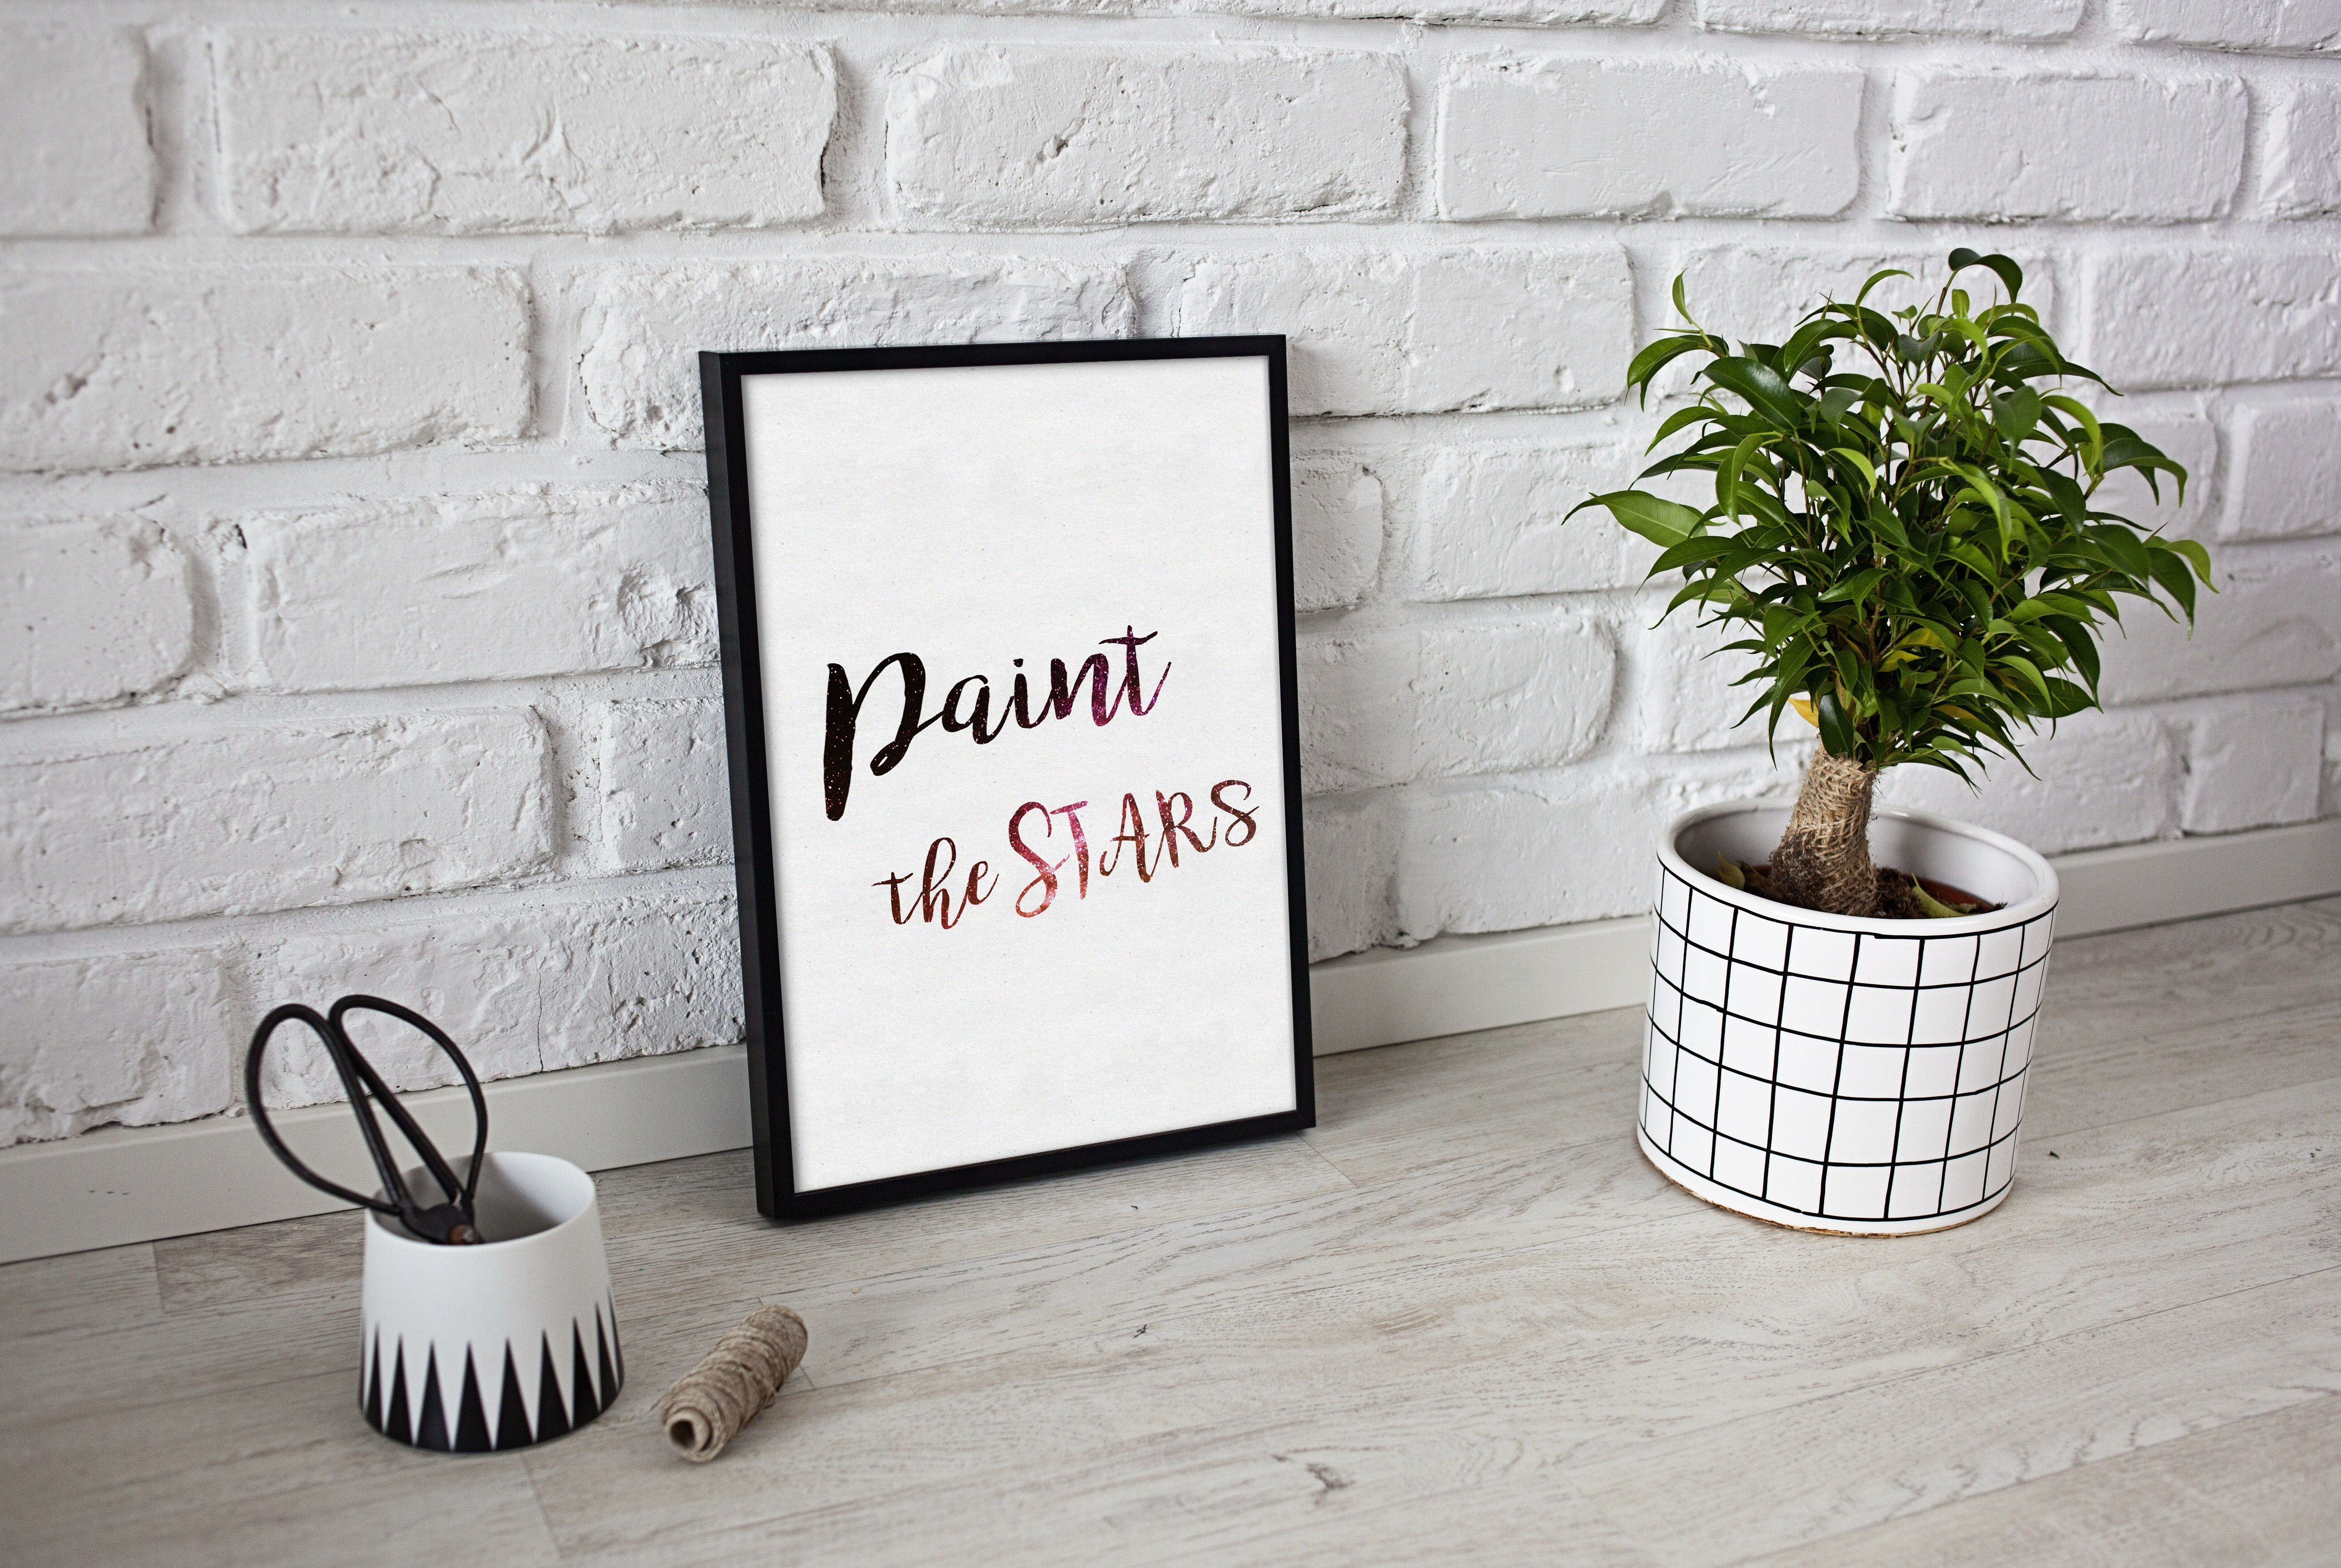 Paint the stars inspirational bedroom dorm room wall décor